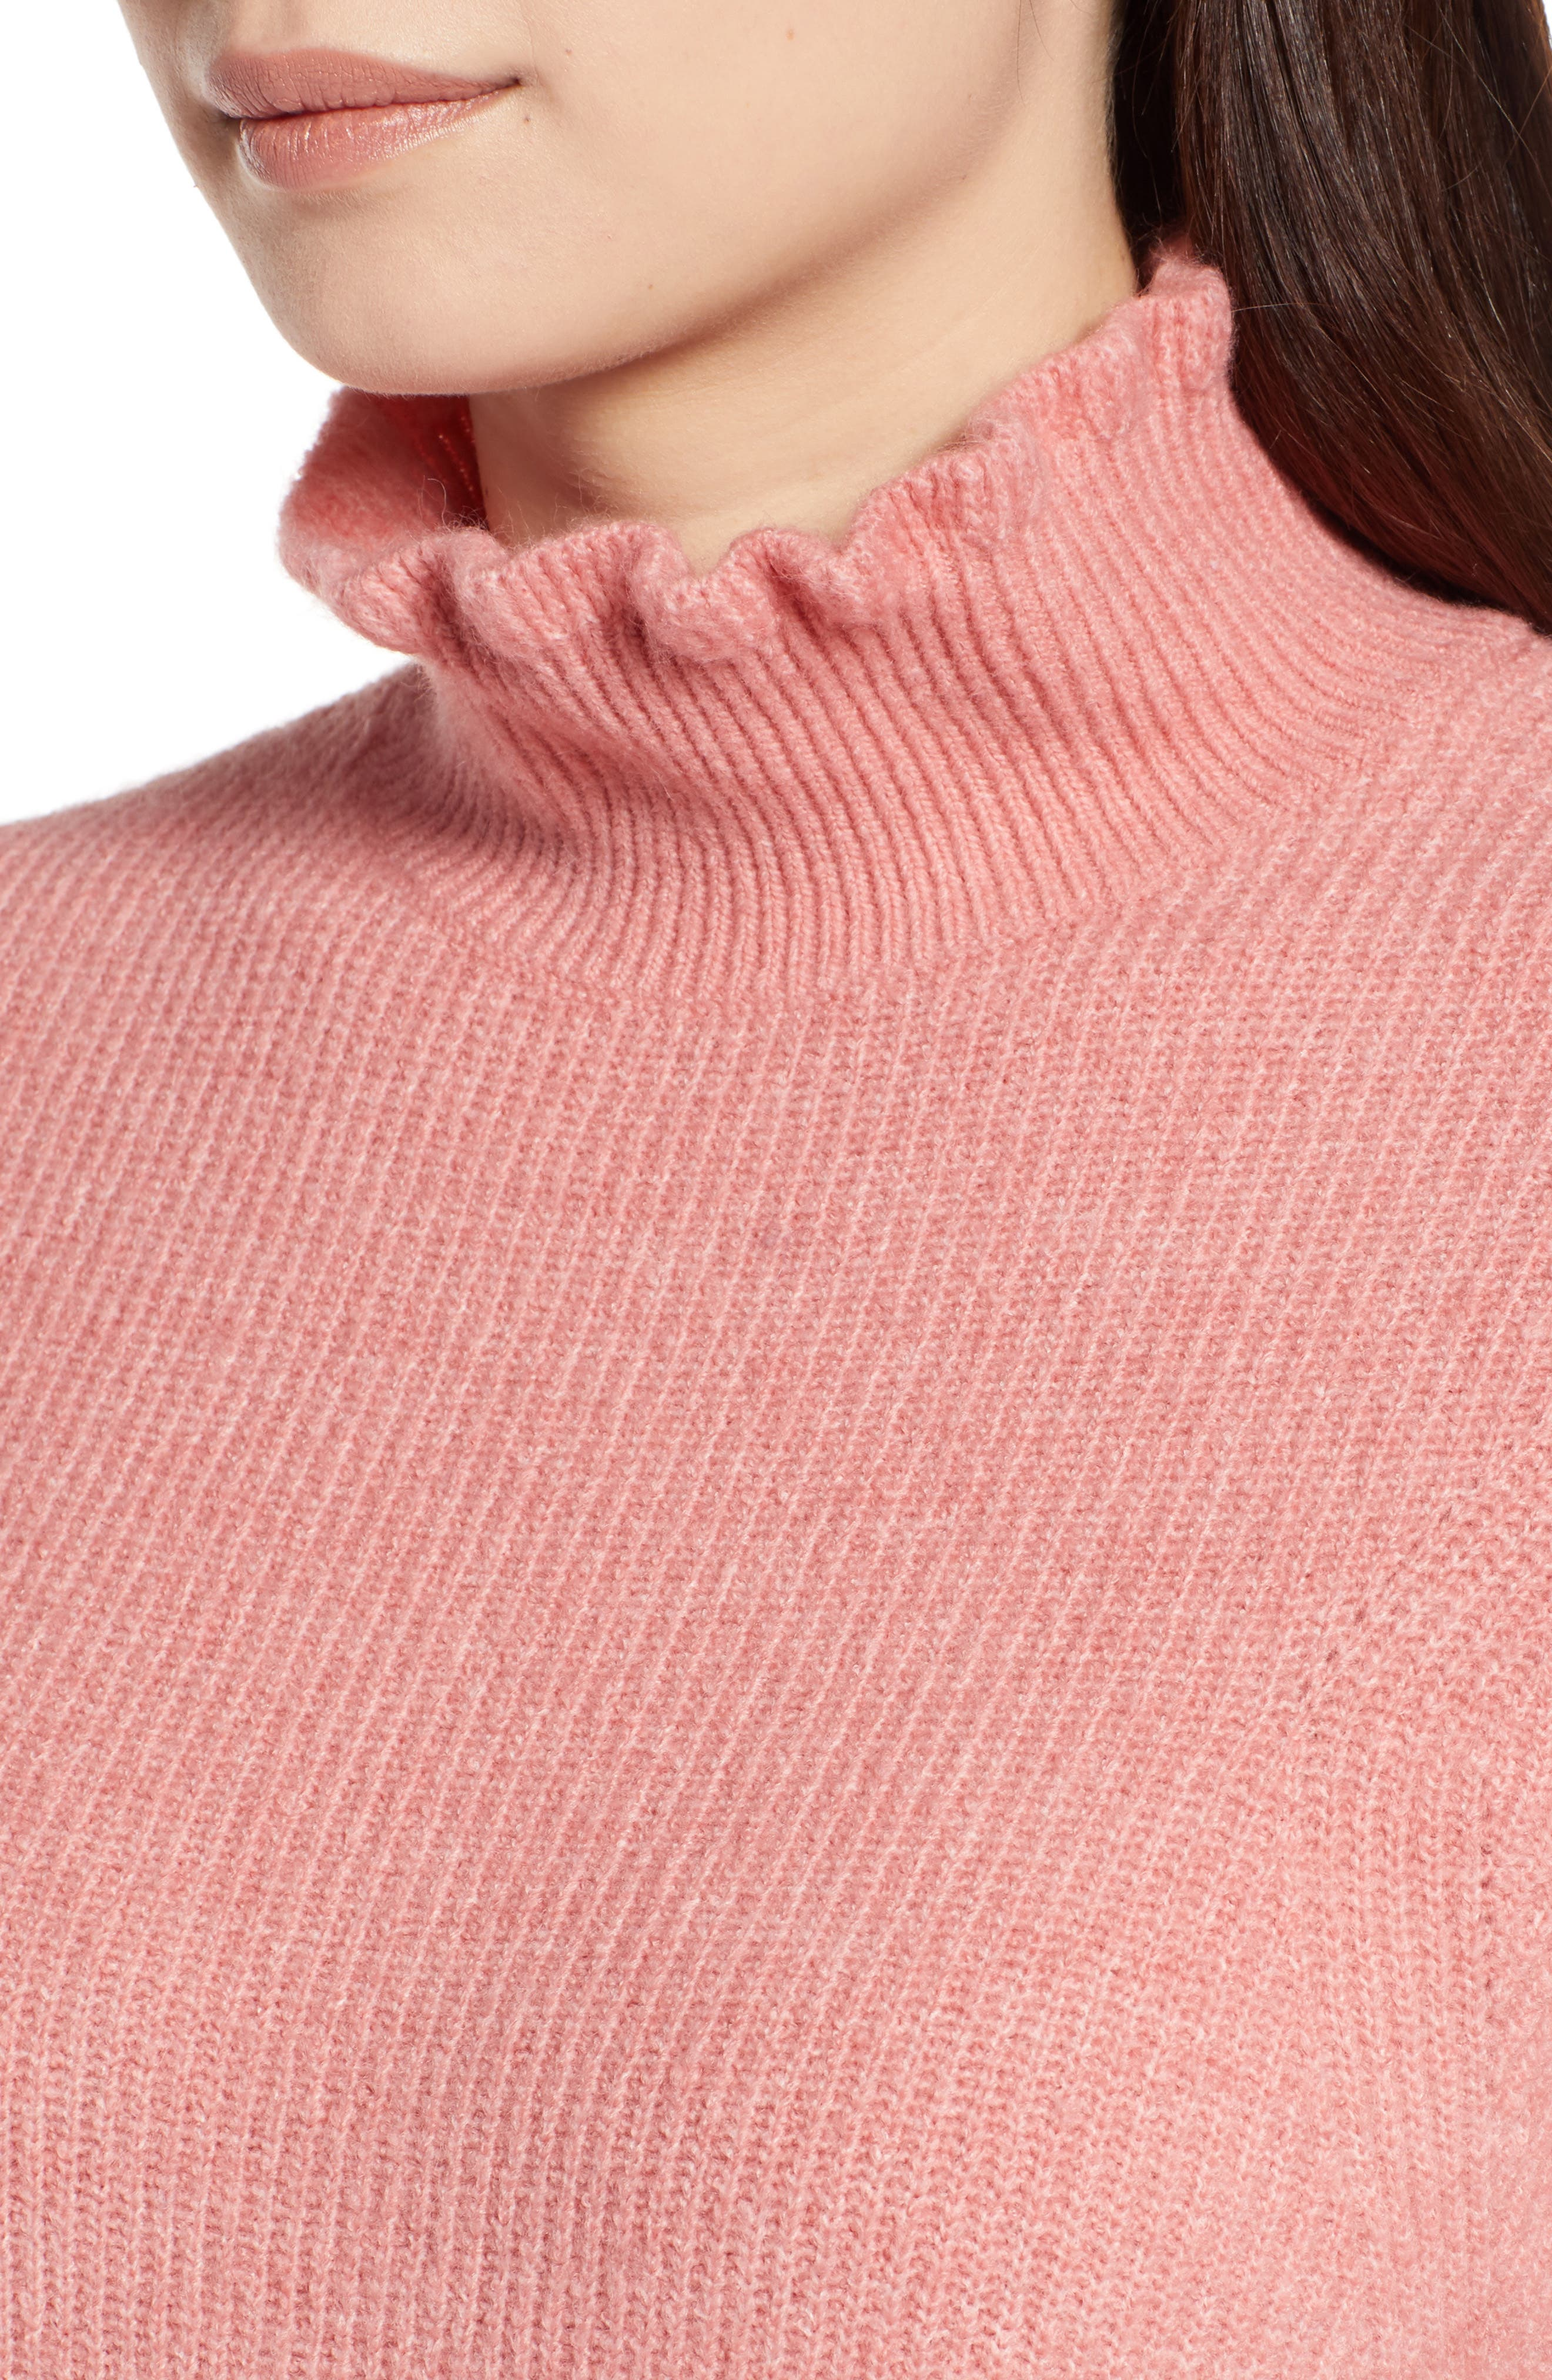 Ruffle Neck Sweater,                             Alternate thumbnail 4, color,                             Pink Apricot